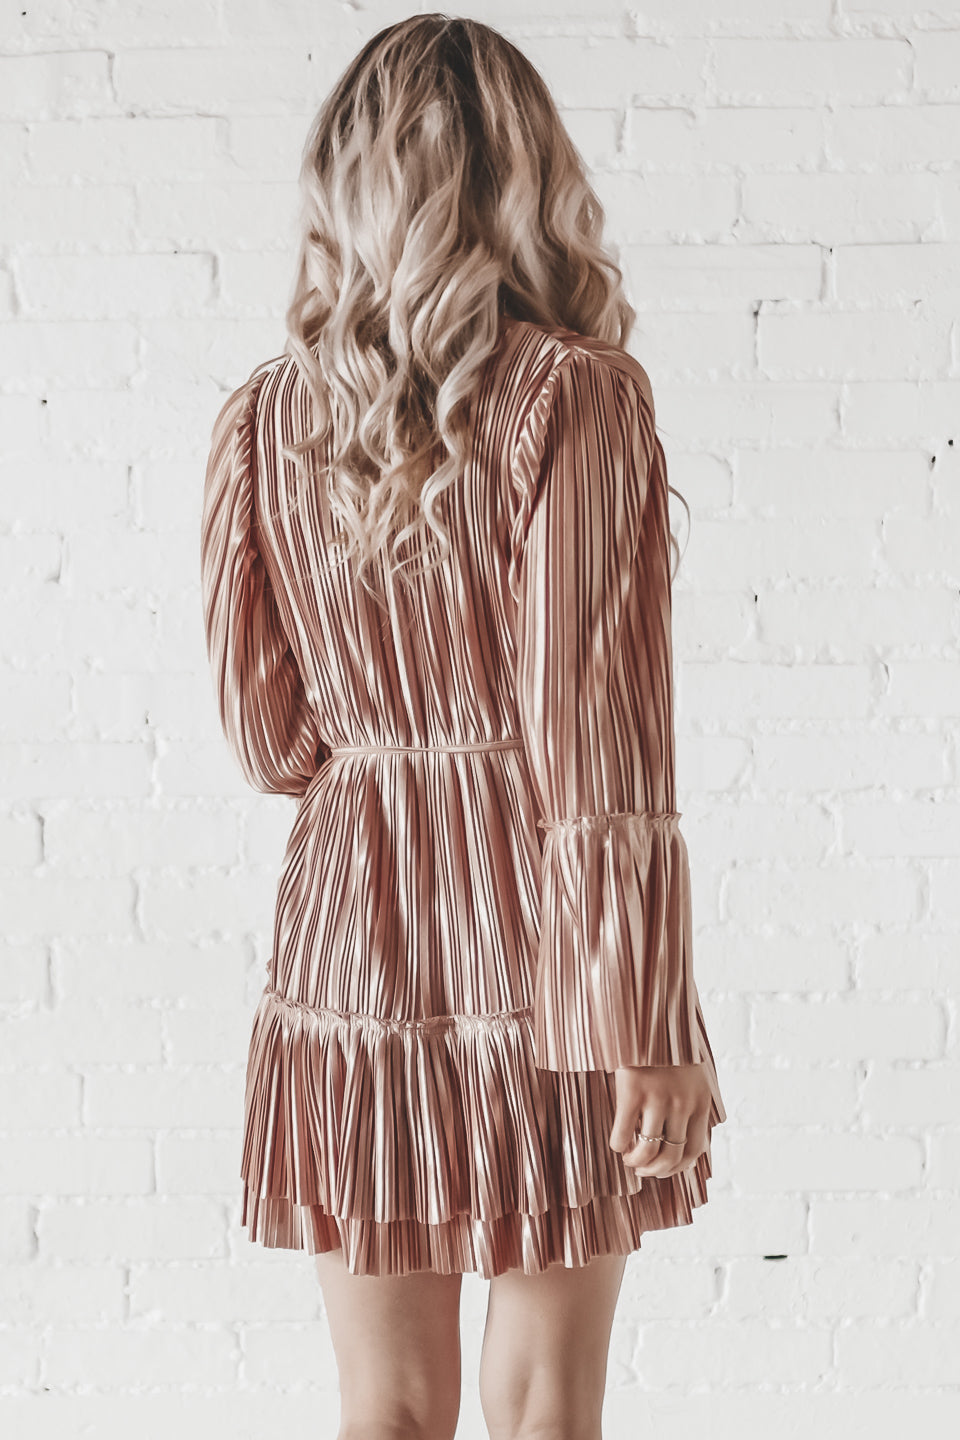 Come Over Rust Sparkly Long Sleeve Tiered Dress